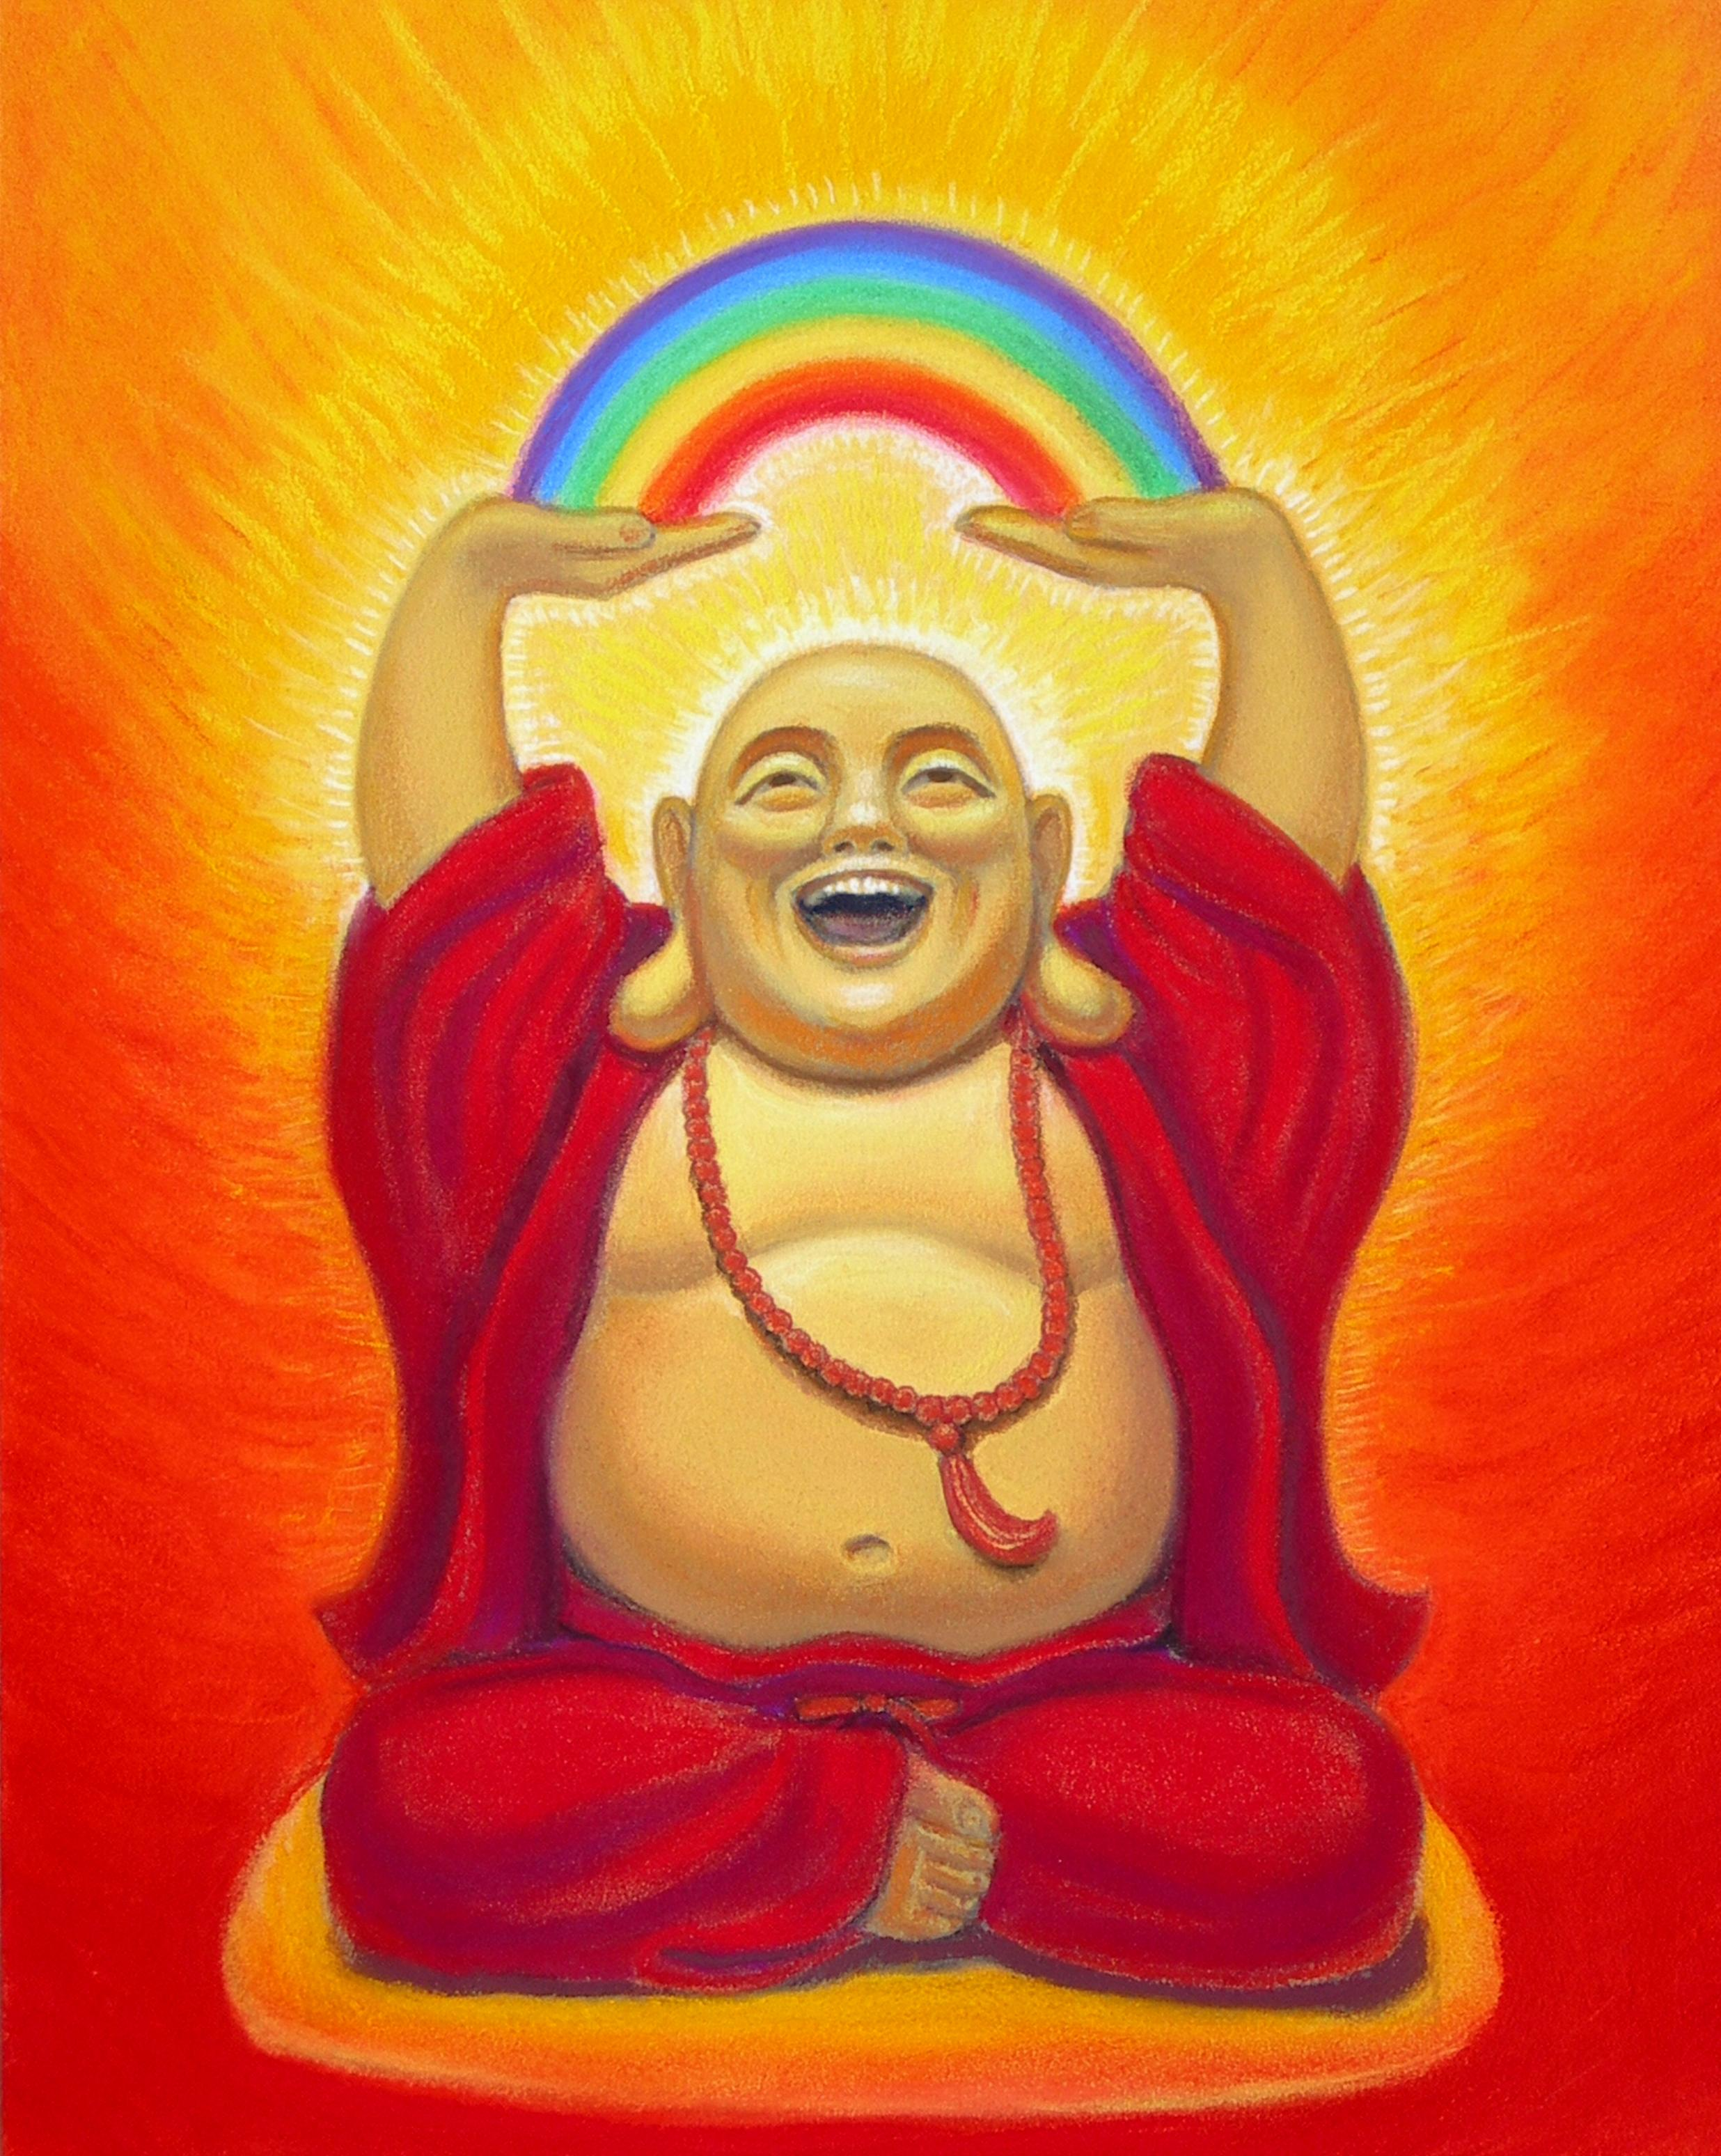 Laughing Rainbow Buddha